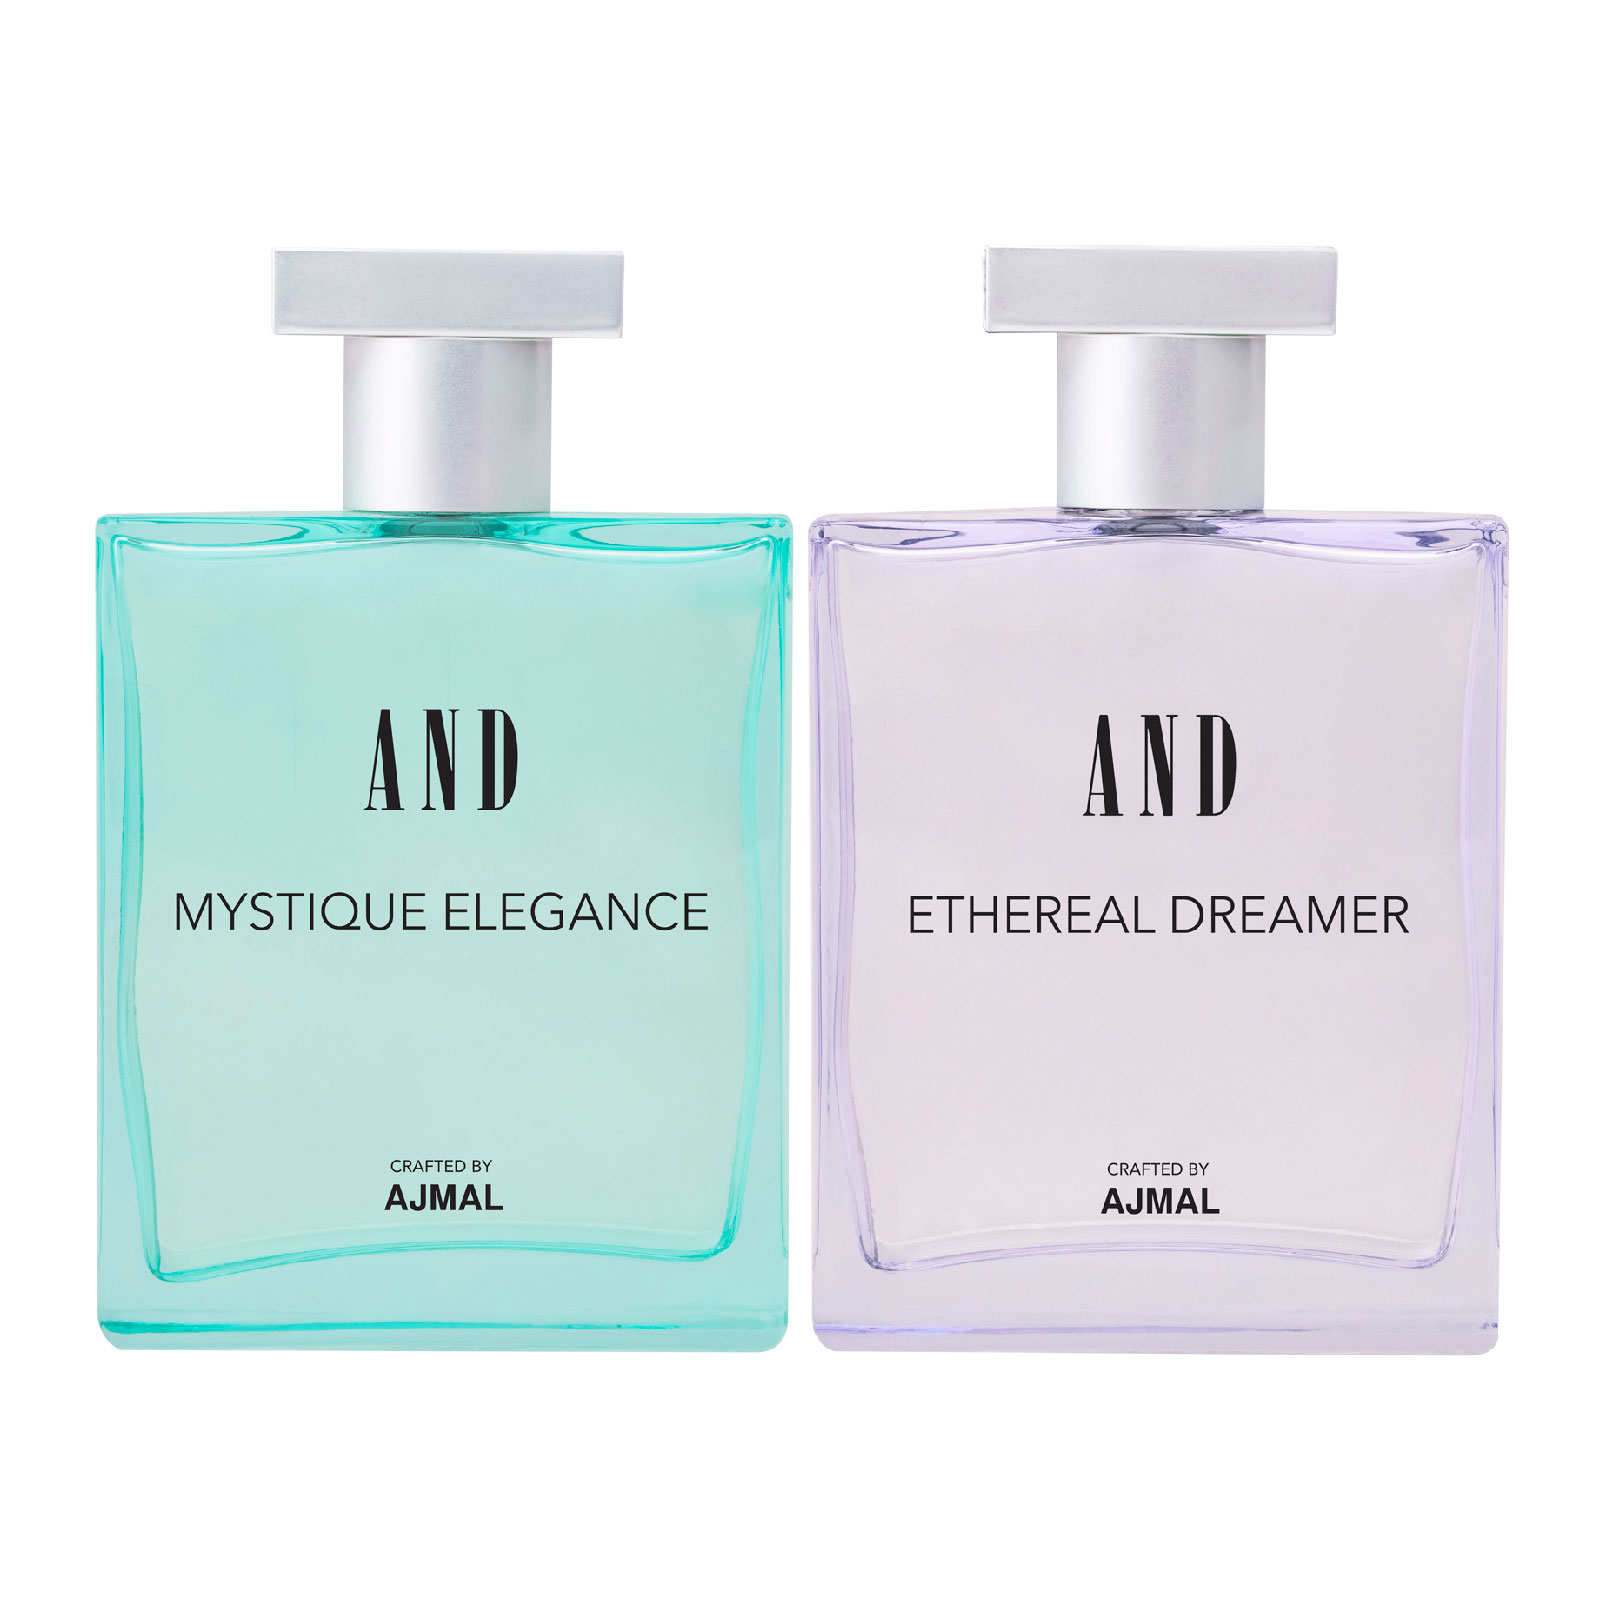 AND Crafted By Ajmal | AND Mystique Elegance & Ethereal Dreamer Pack of 2 EDP 100ML each for Women Crafted by Ajmal + 2 Parfum Testers